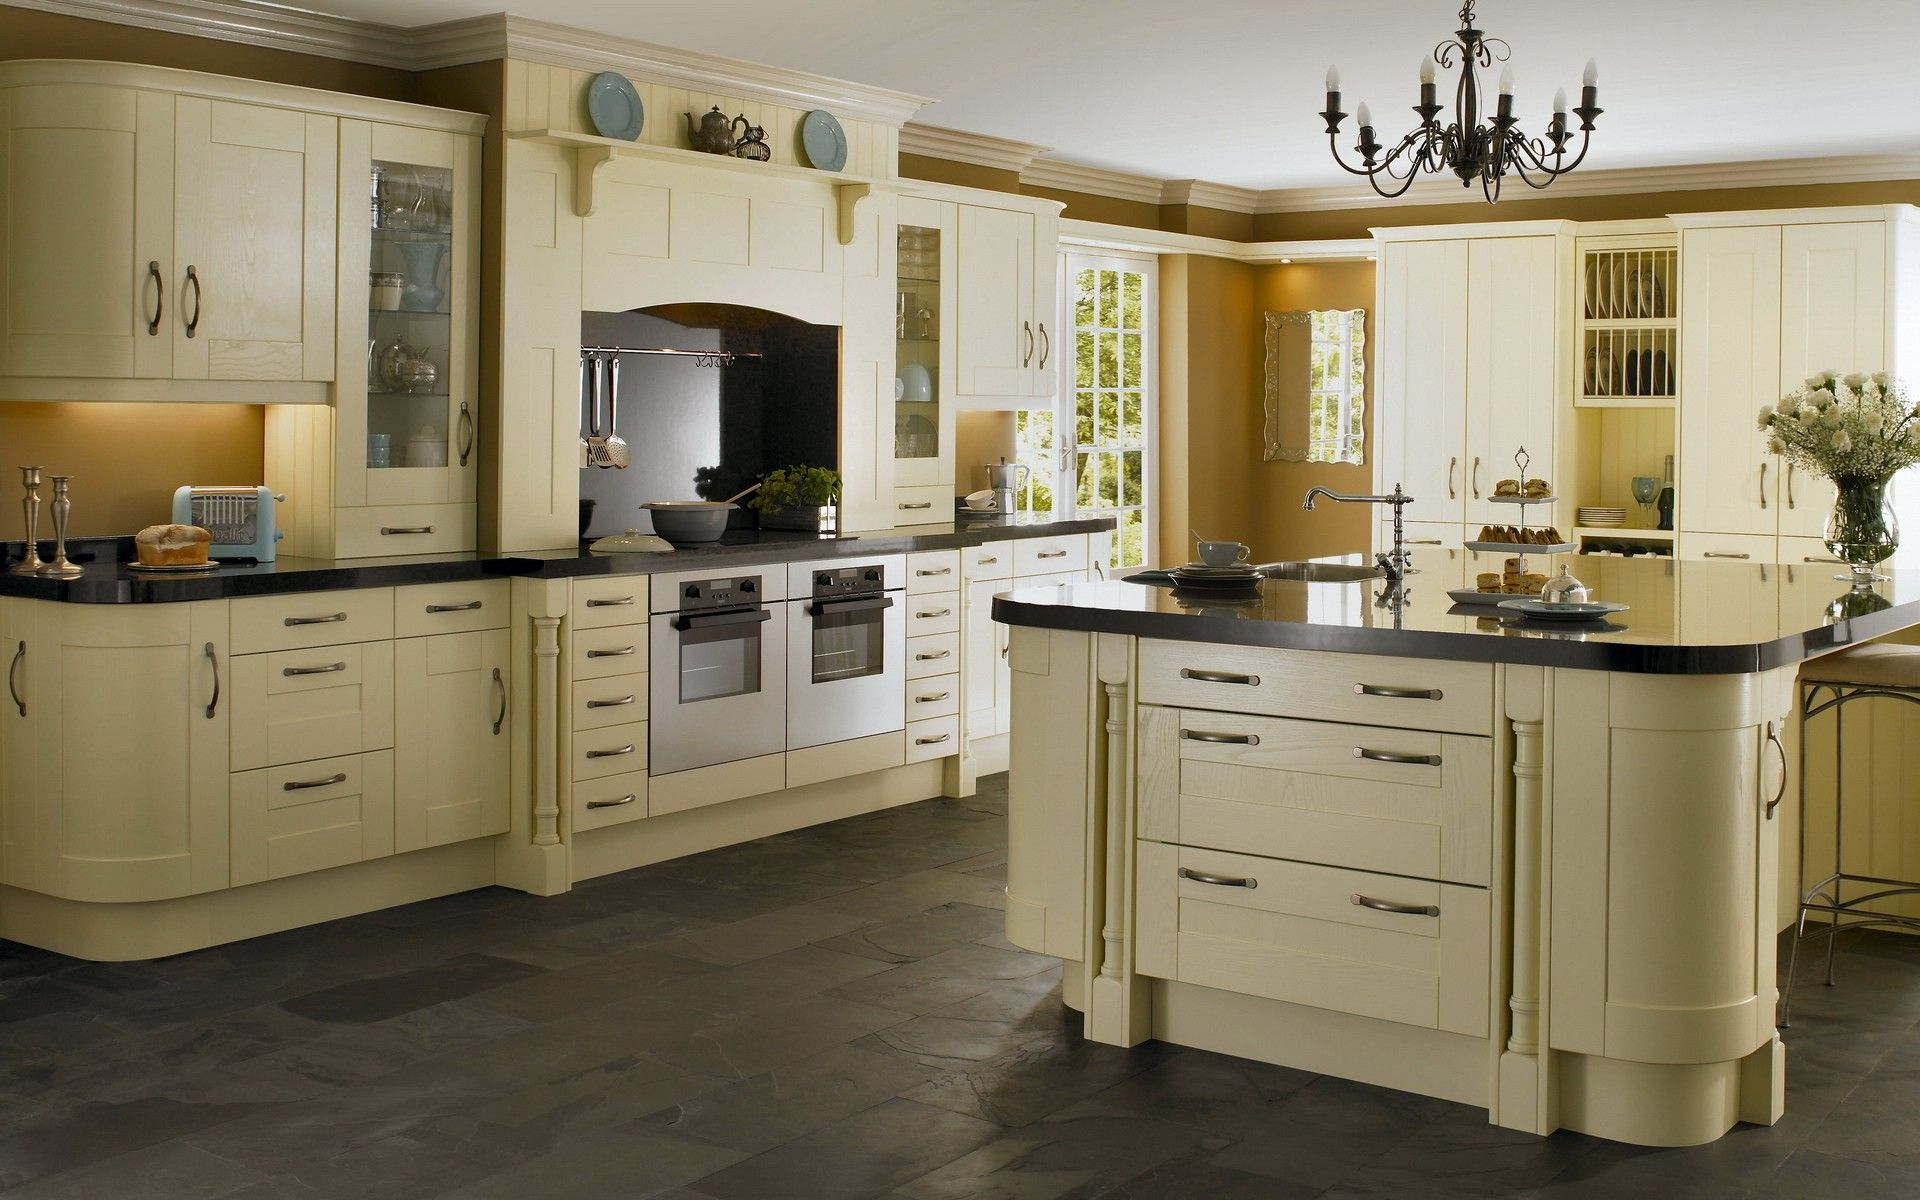 Best Cream Cabinets Grey Floor Images Google Search Luxury 400 x 300